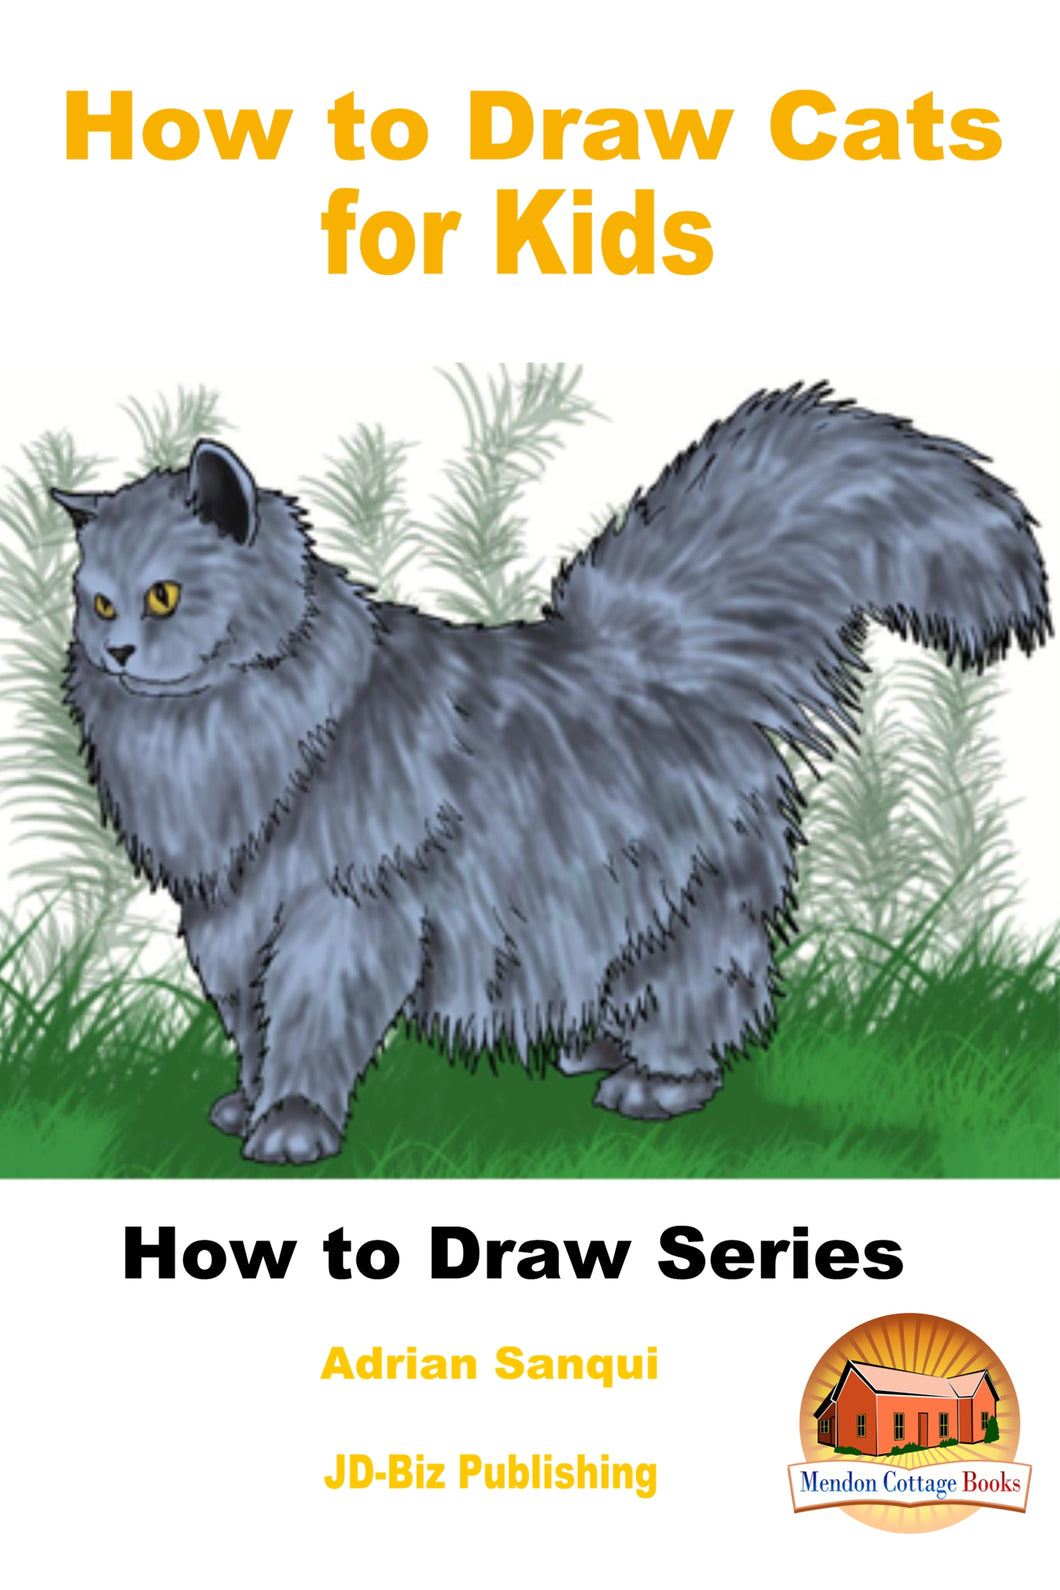 How to Draw Cats for Kids